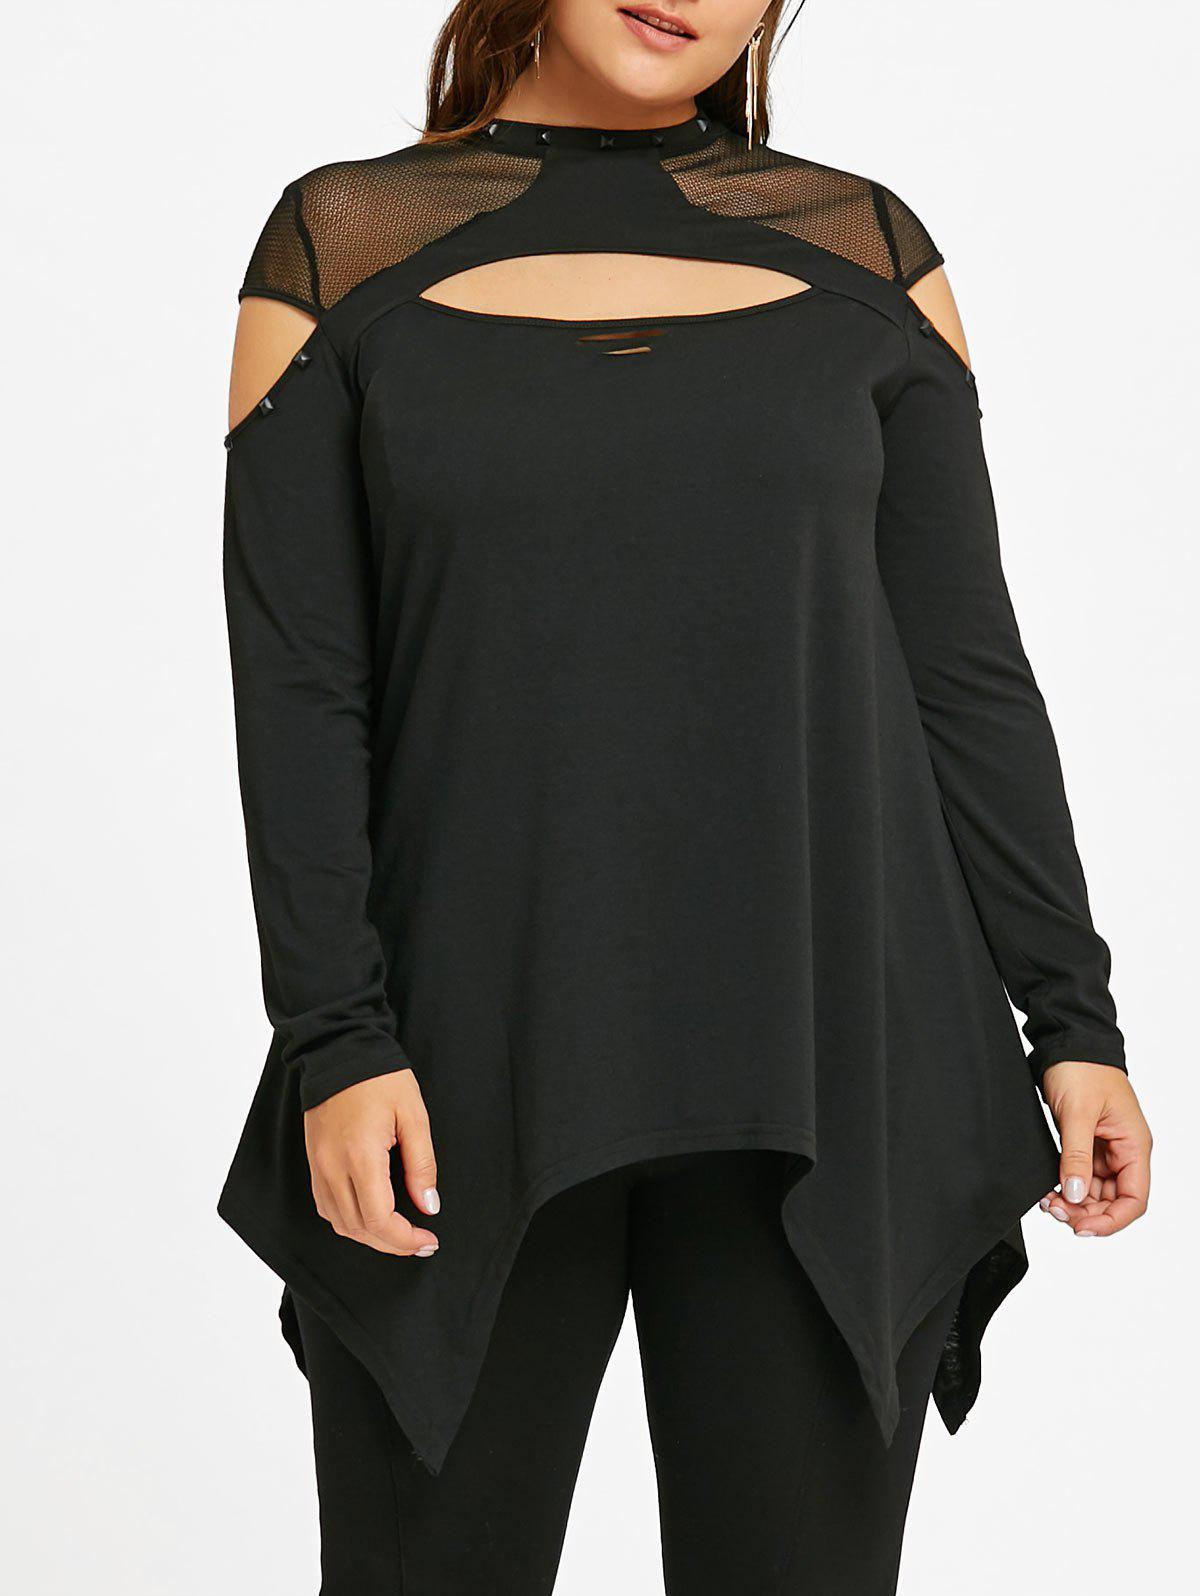 Plus Size Mesh Insert Cut Out TopWOMEN<br><br>Size: XL; Color: BLACK; Material: Polyester,Spandex; Shirt Length: Long; Sleeve Length: Full; Collar: Crew Neck; Style: Casual; Season: Fall,Spring; Pattern Type: Solid; Weight: 0.3400kg; Package Contents: 1 x Top;